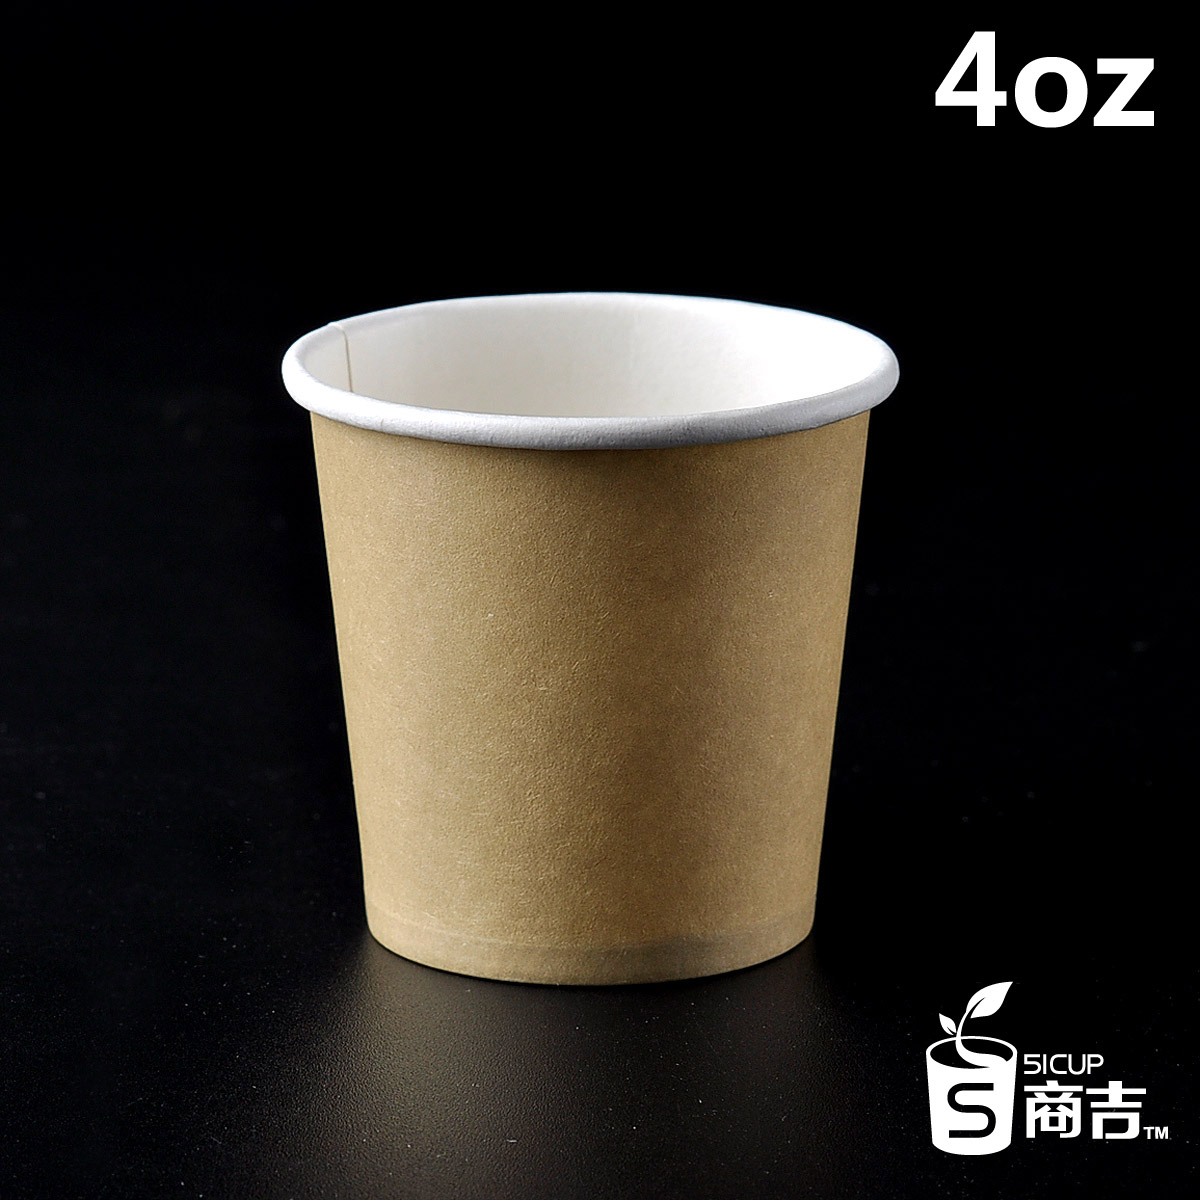 Small Coffee Cups And Saucers Us 17 9 4oz Disposable Cup Small Paper Cups Coffee Cup Yogurt Cup 100pcs Cowhide Color In Cups Saucers From Home Garden On Aliexpress